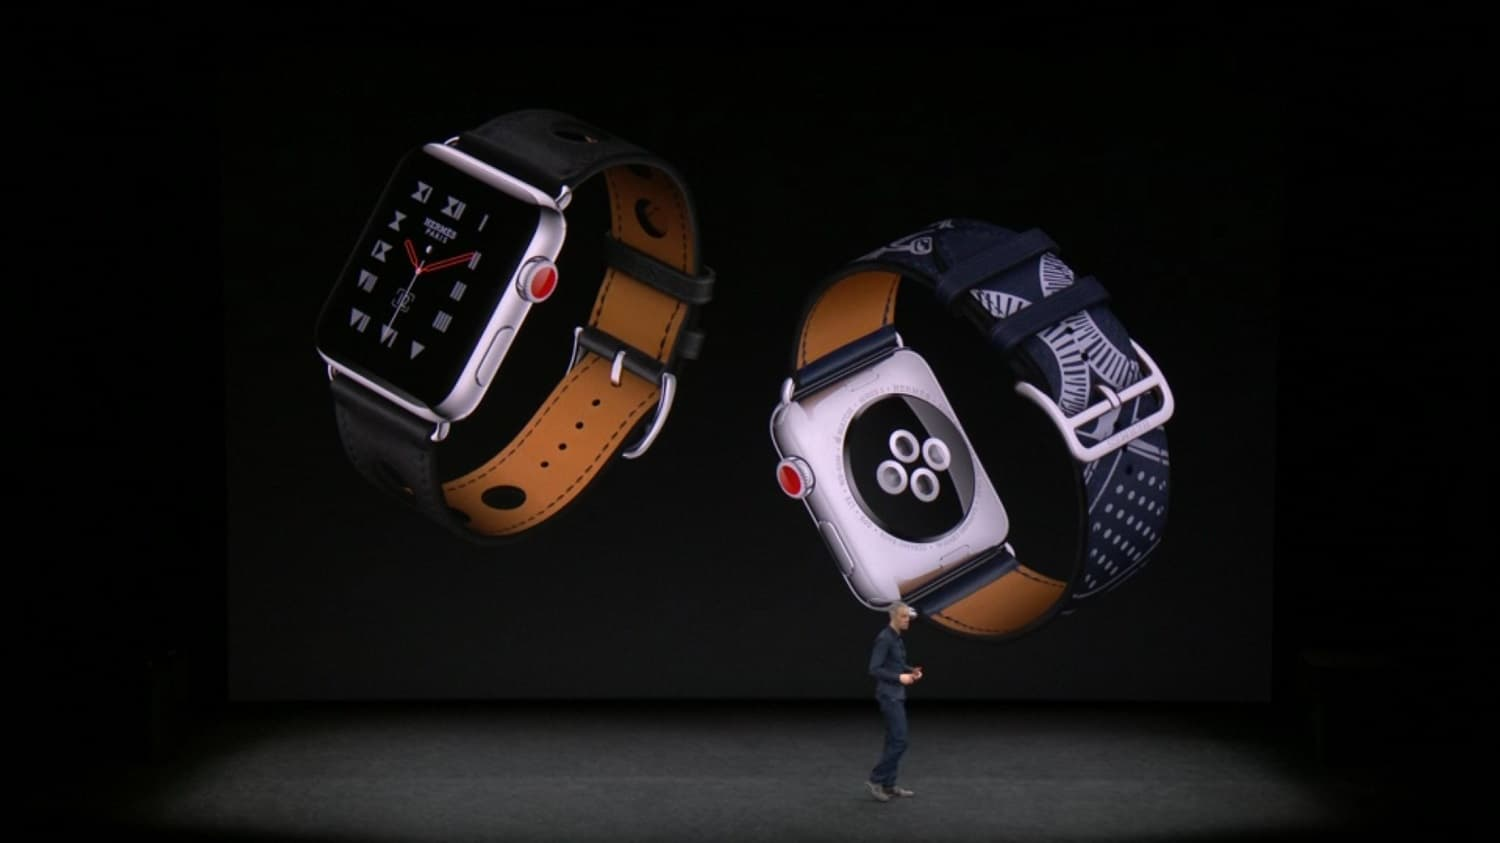 When Apple launched Watch Series 3, it mentioned that it can run up to 18 hours of battery life which is true but same is not the situation when connected to LTE.